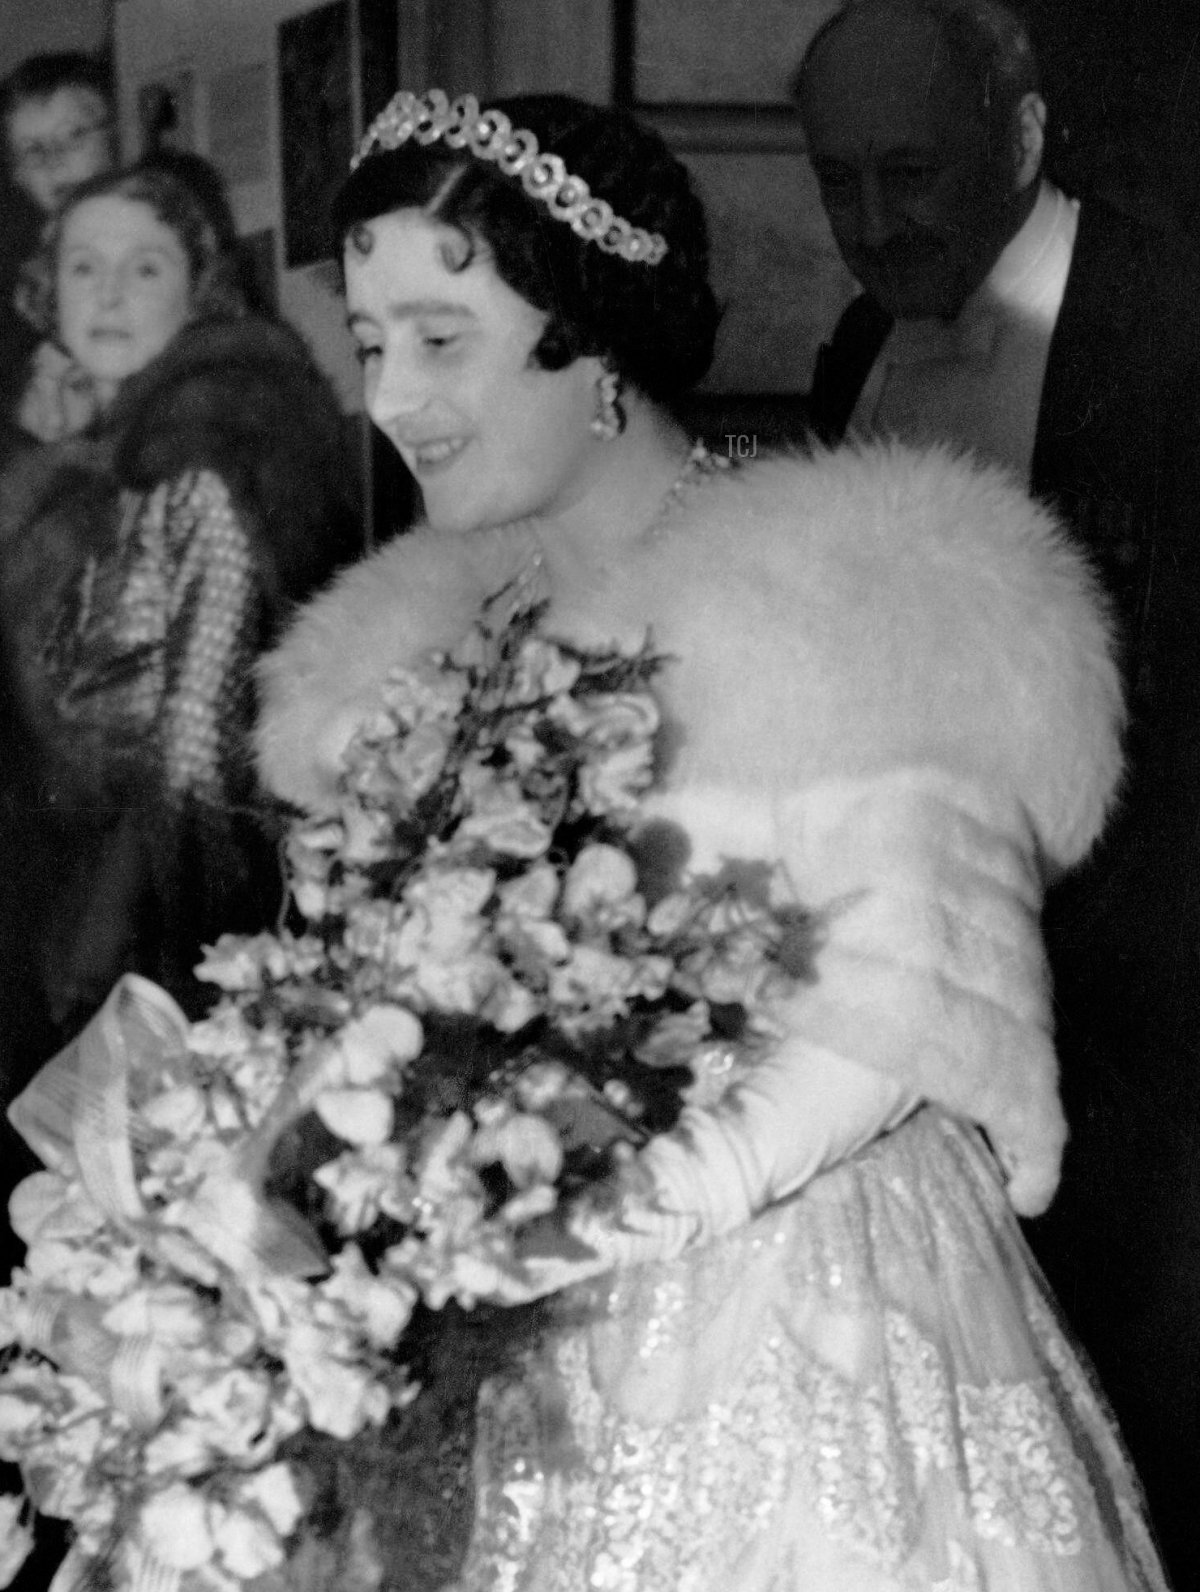 Queen Elizabeth of the United Kingdom (later the Queen Mother) wears the Teck Hoop Necklace Tiara for a performance by the Sadler's Wells Ballet School, May 1938